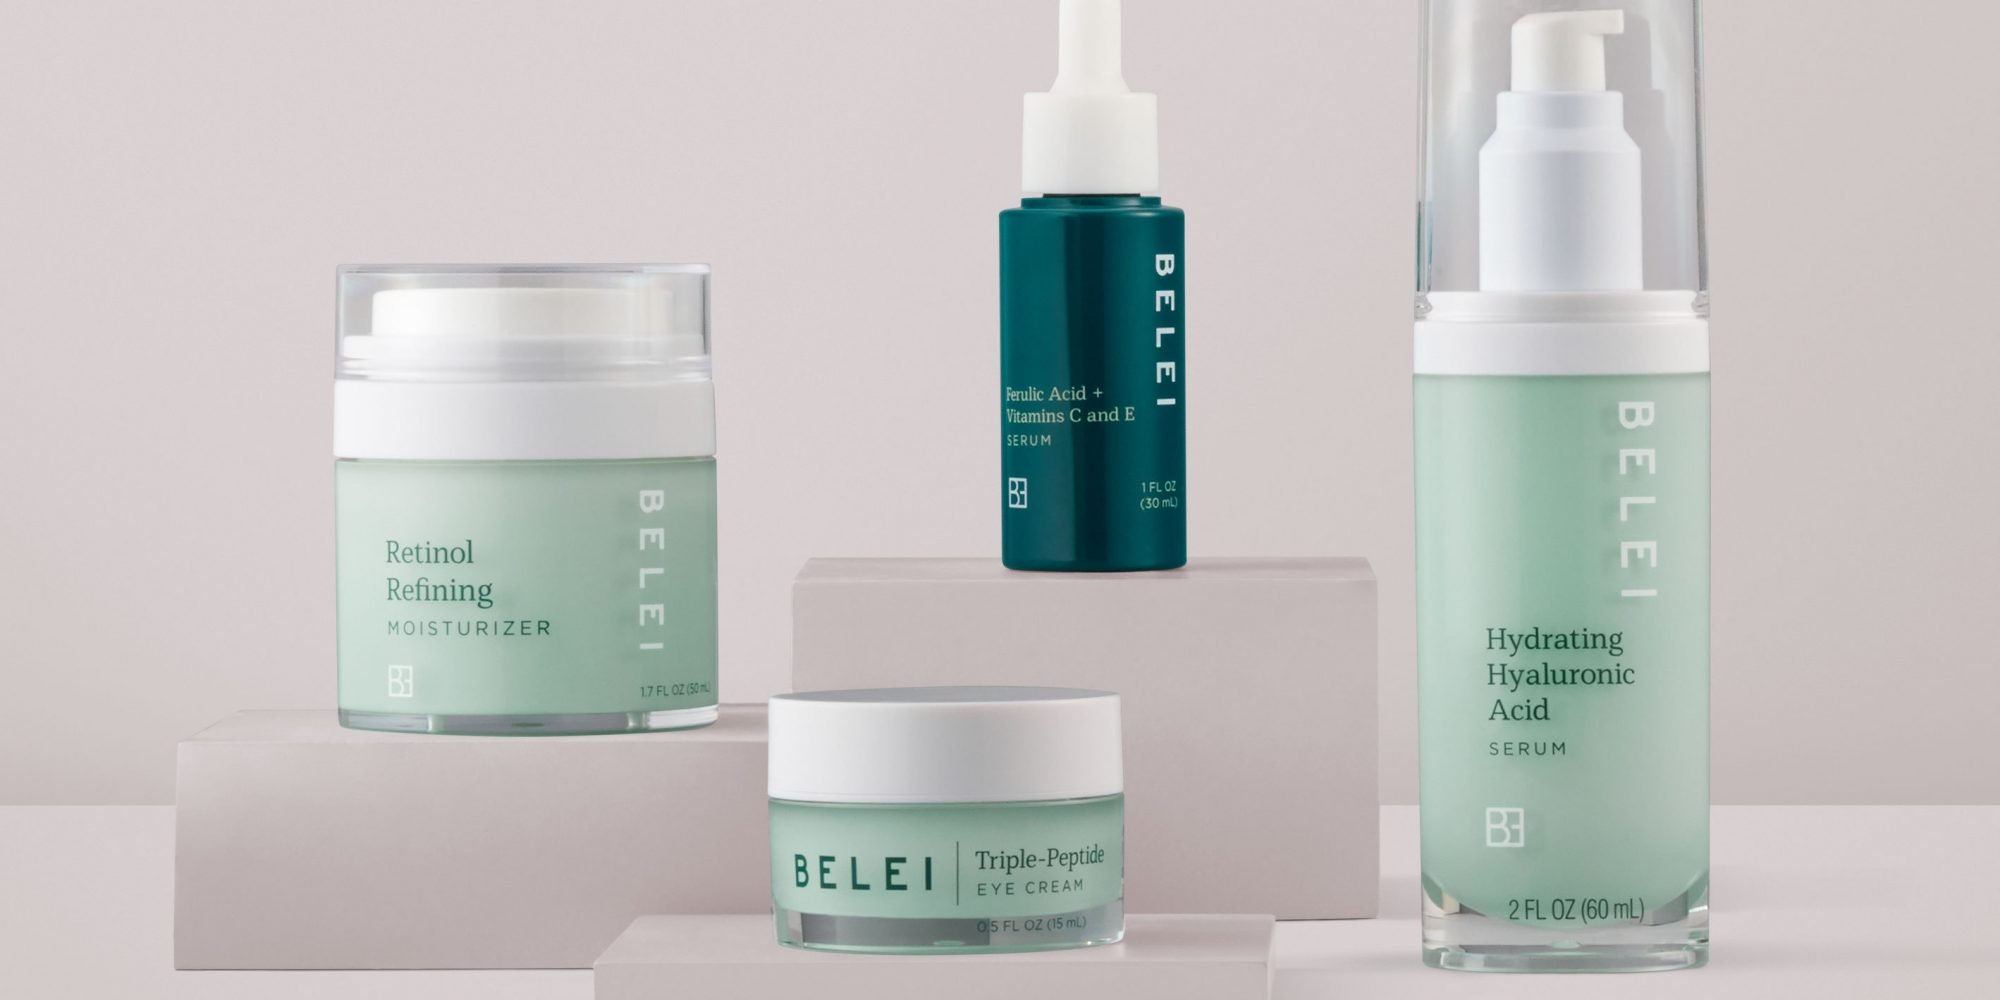 Who's Afraid Of Amazon's New Skincare Brand Belei? Not Indie Beauty Entrepreneurs